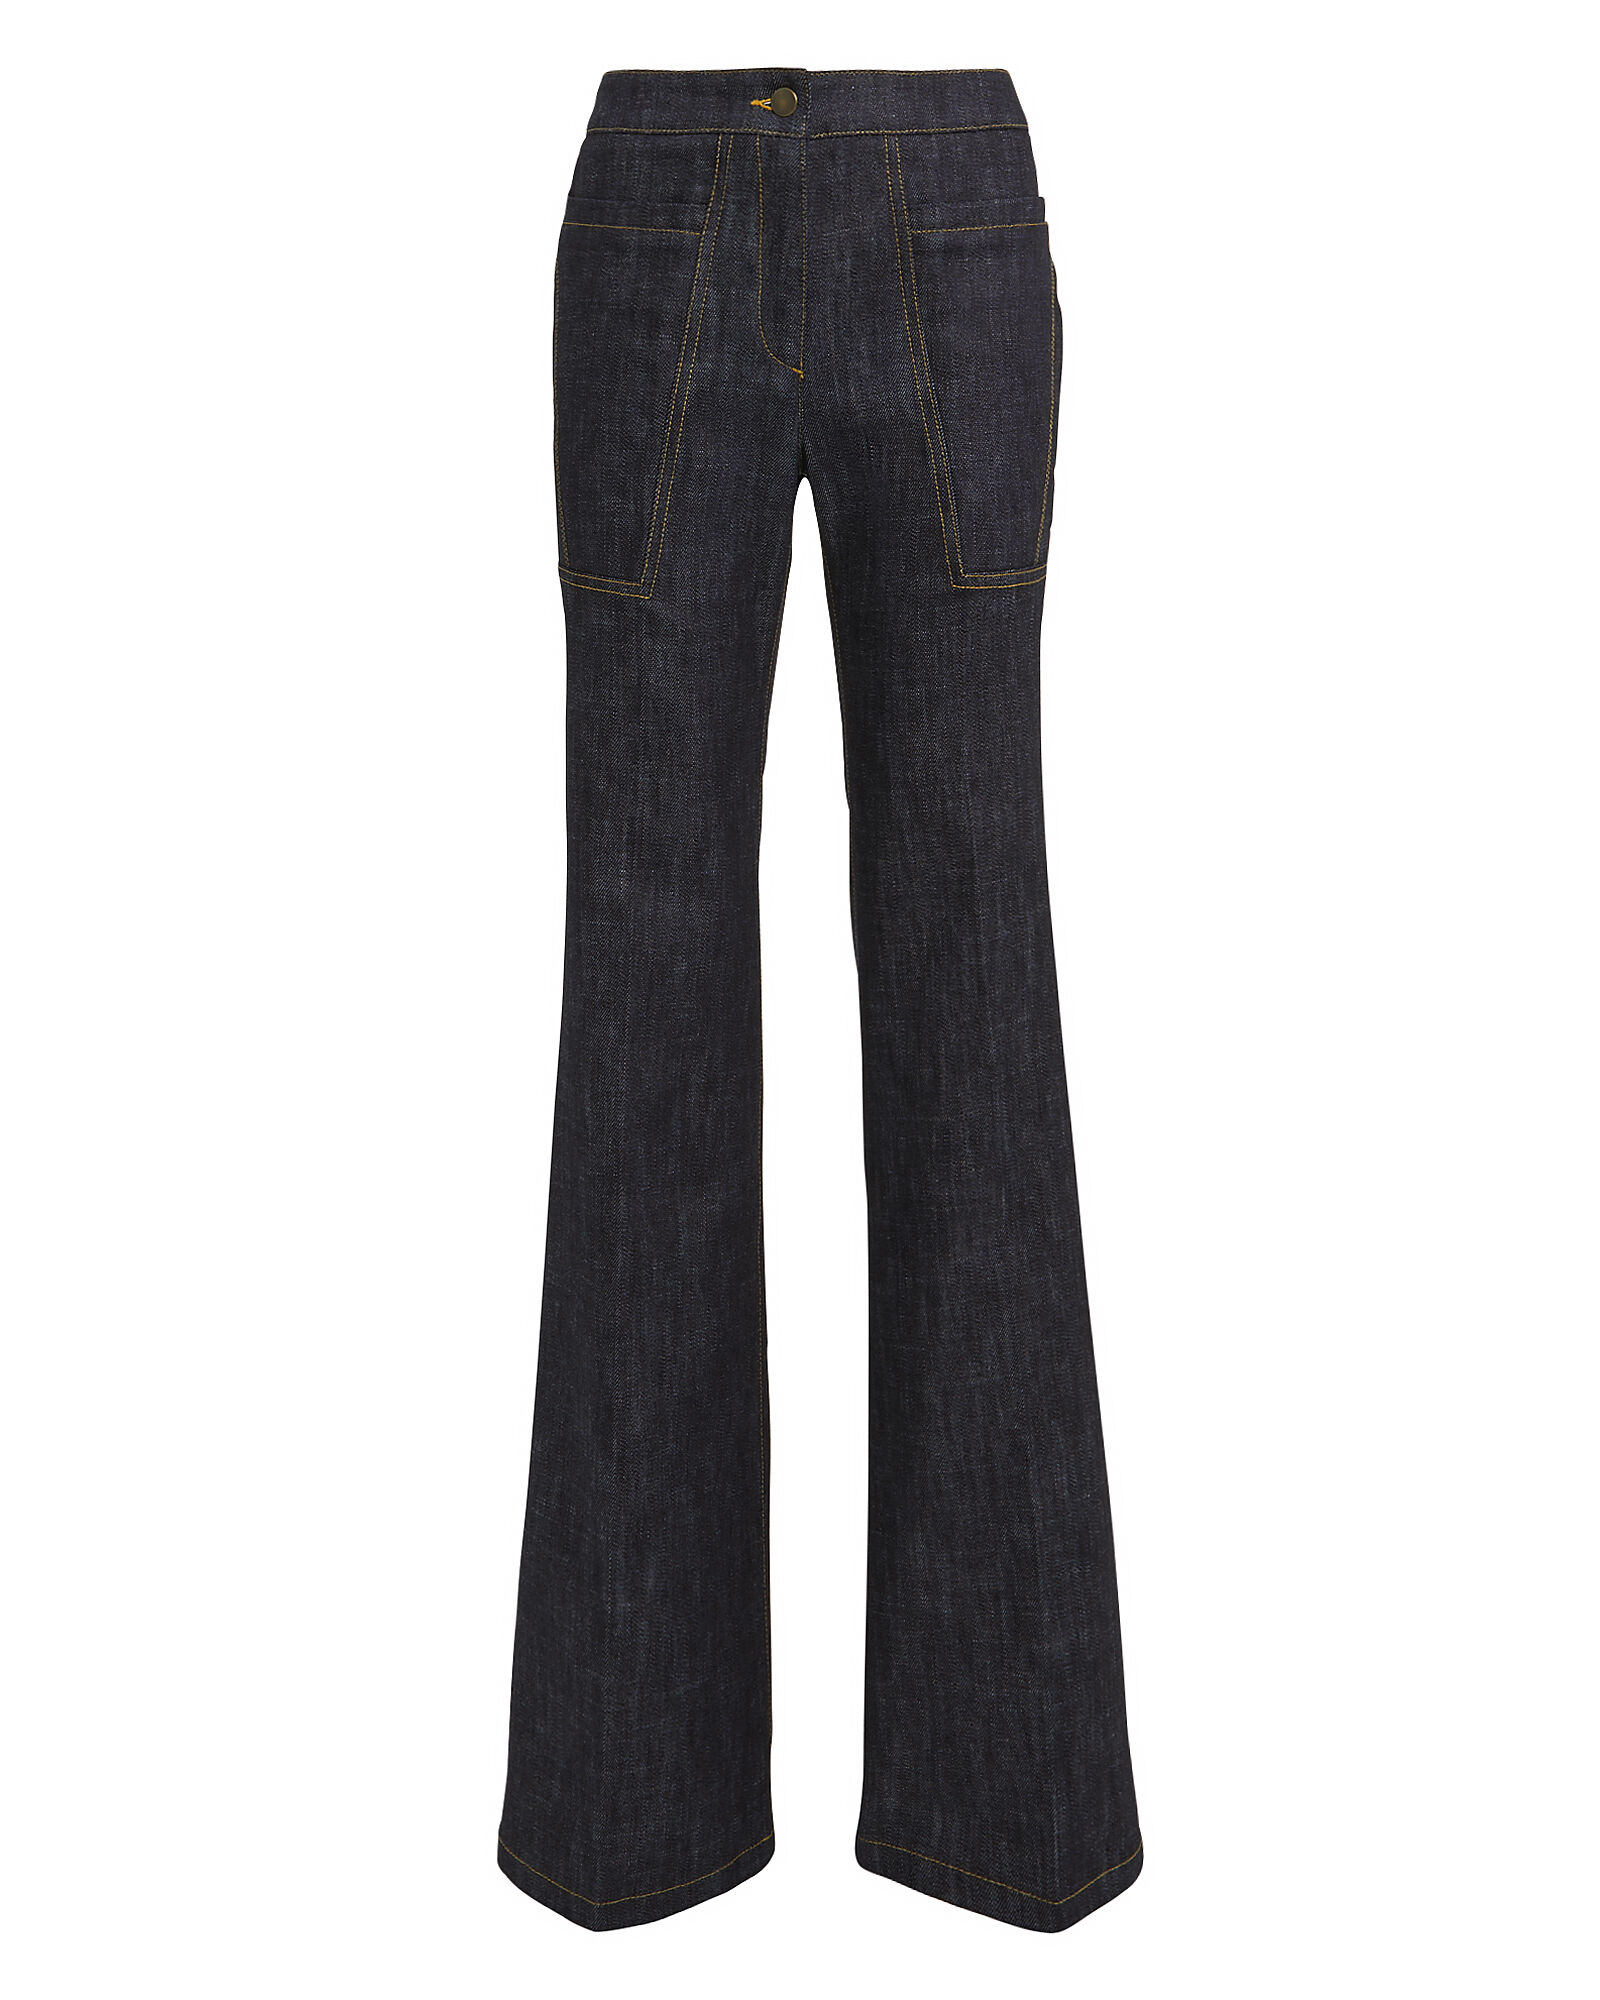 Charlotte Flare Jeans, DARK WASH DENIM, hi-res